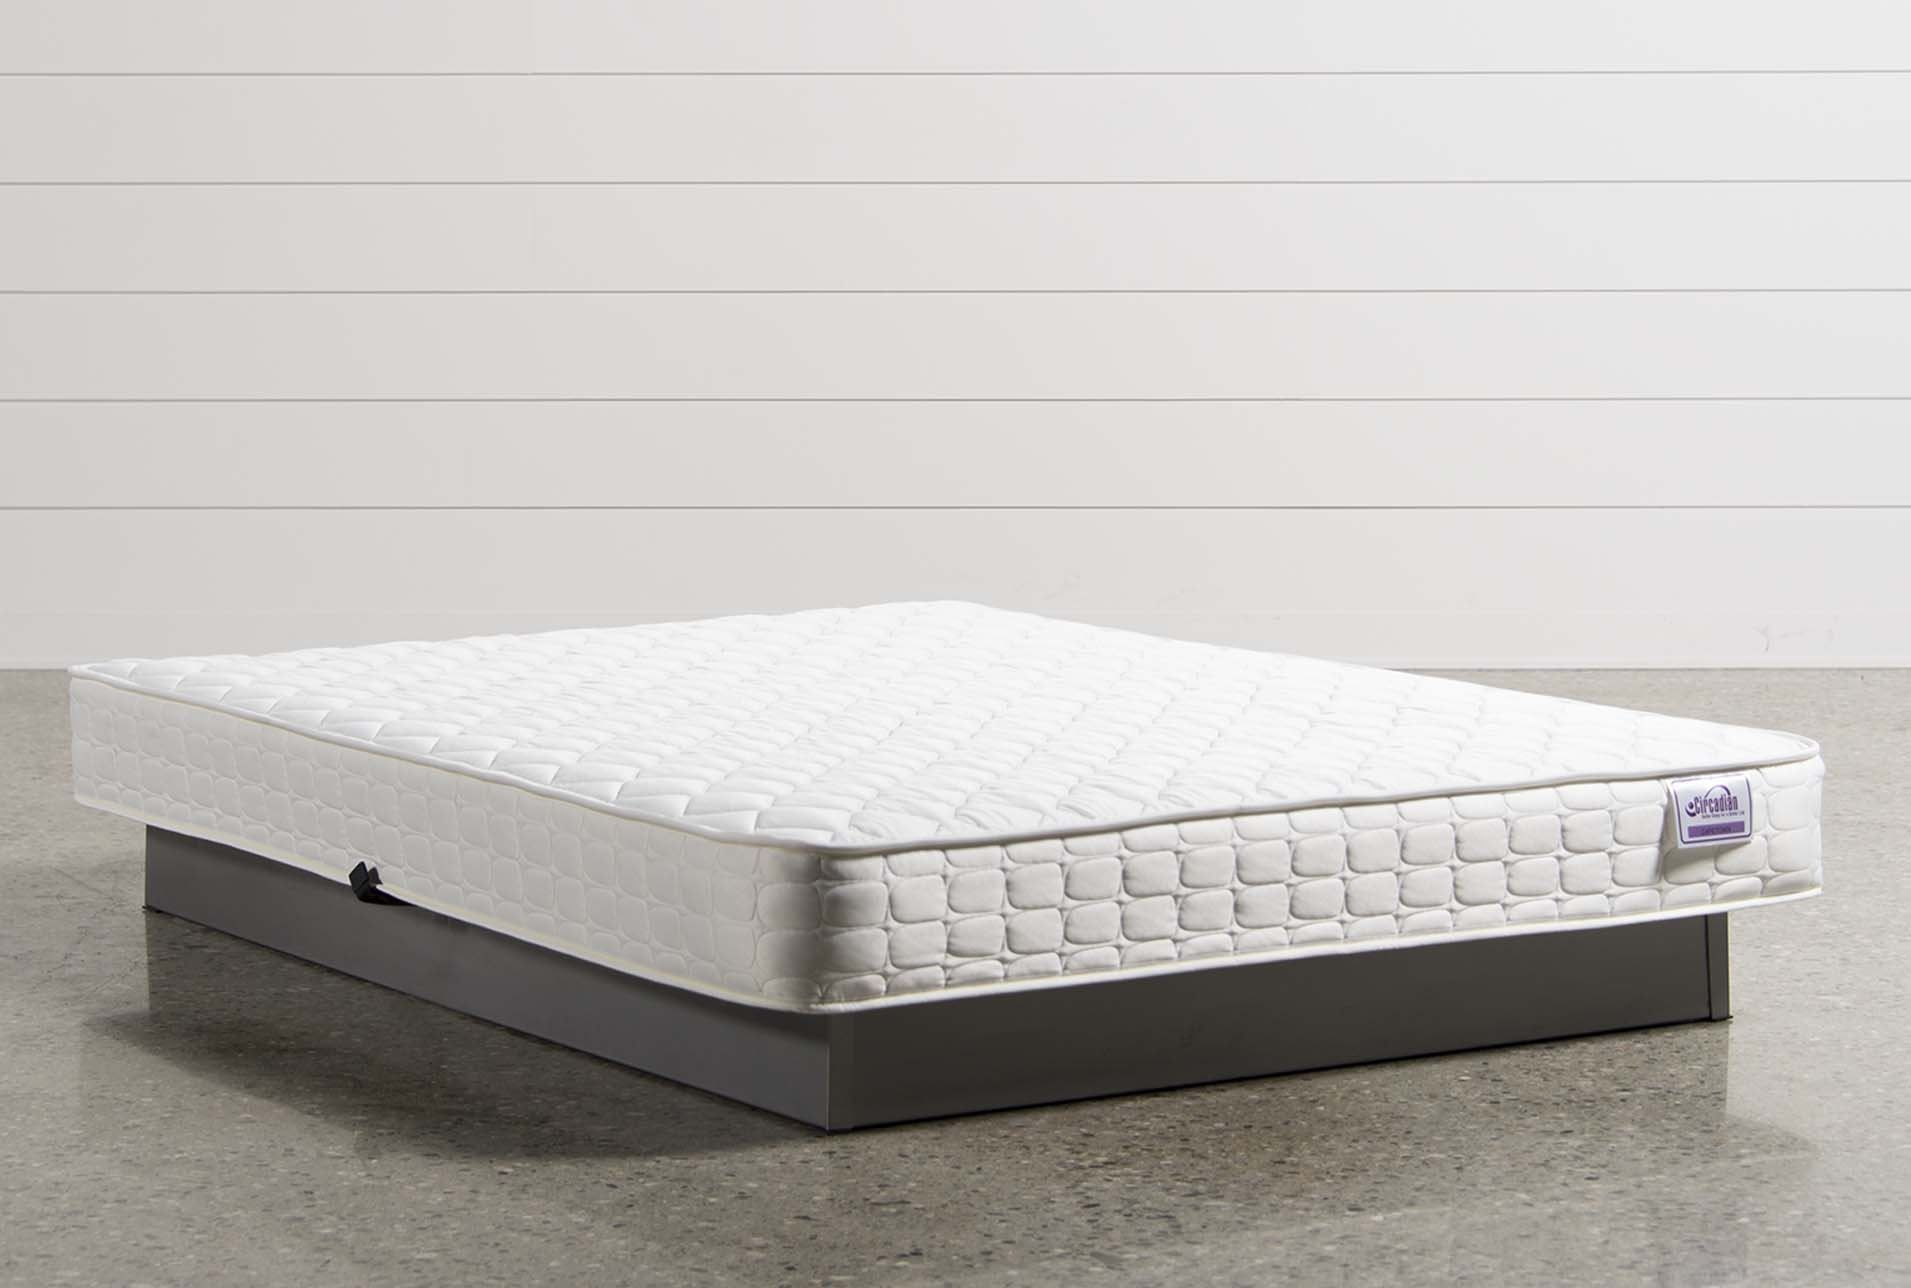 Inexpensive Full Size Mattress Cape Town Full Mattress Products Full Bed Mattress Full Size